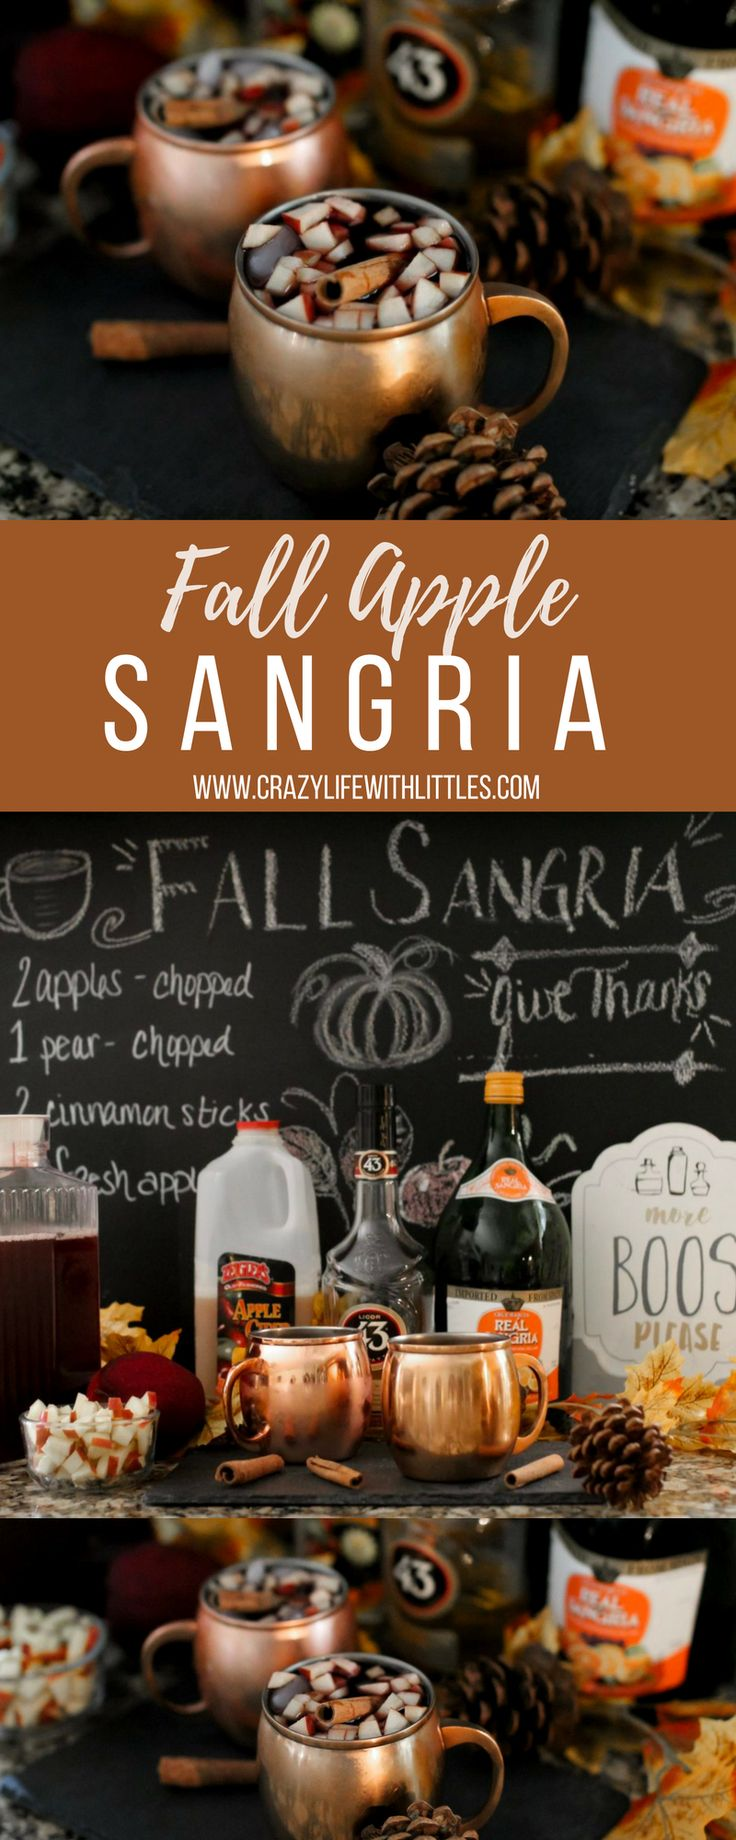 fall sangria with apple cider, honeycrisp apple sangria, fall sangria fireball, fall sangria tasty, apple cider sangria with moscato, white wine apple cider sangria, autumn sangria azalea, white apple sangria, moscow mule, copper mug drink recipe